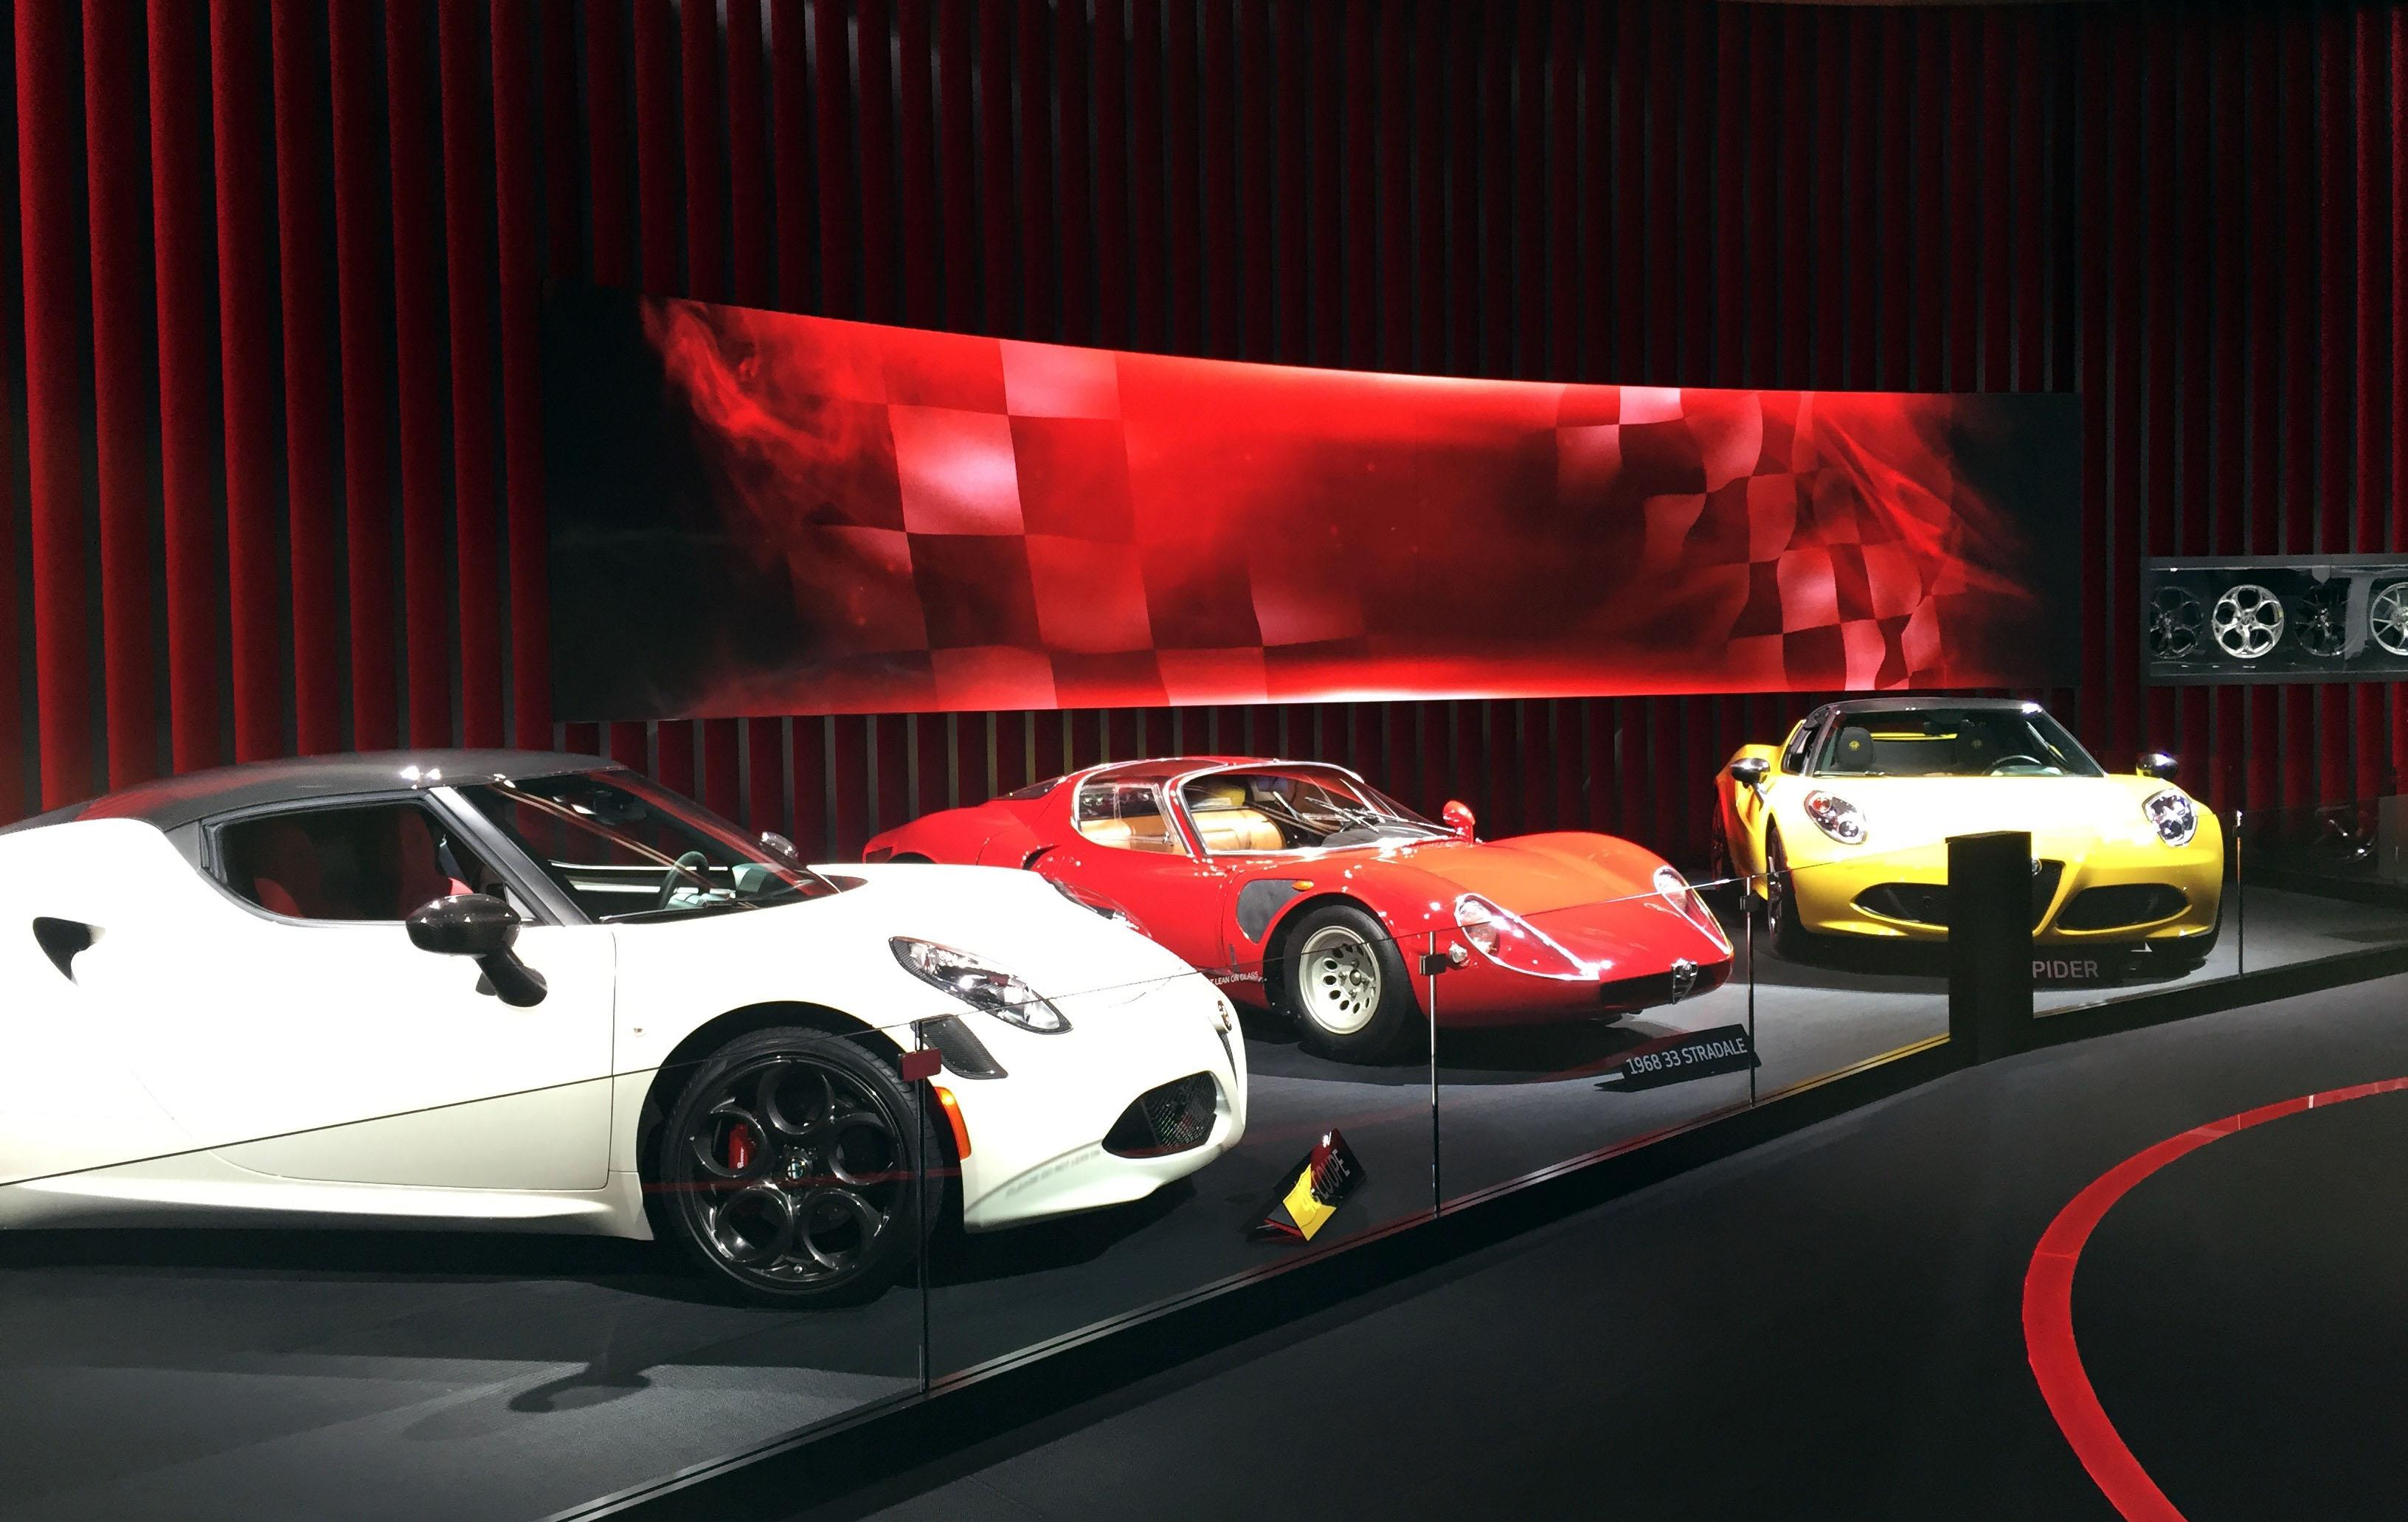 2016 Alfa Romeo 4C and the 1968 33 Stradale (center) (Photo by Jill Ciminillo)